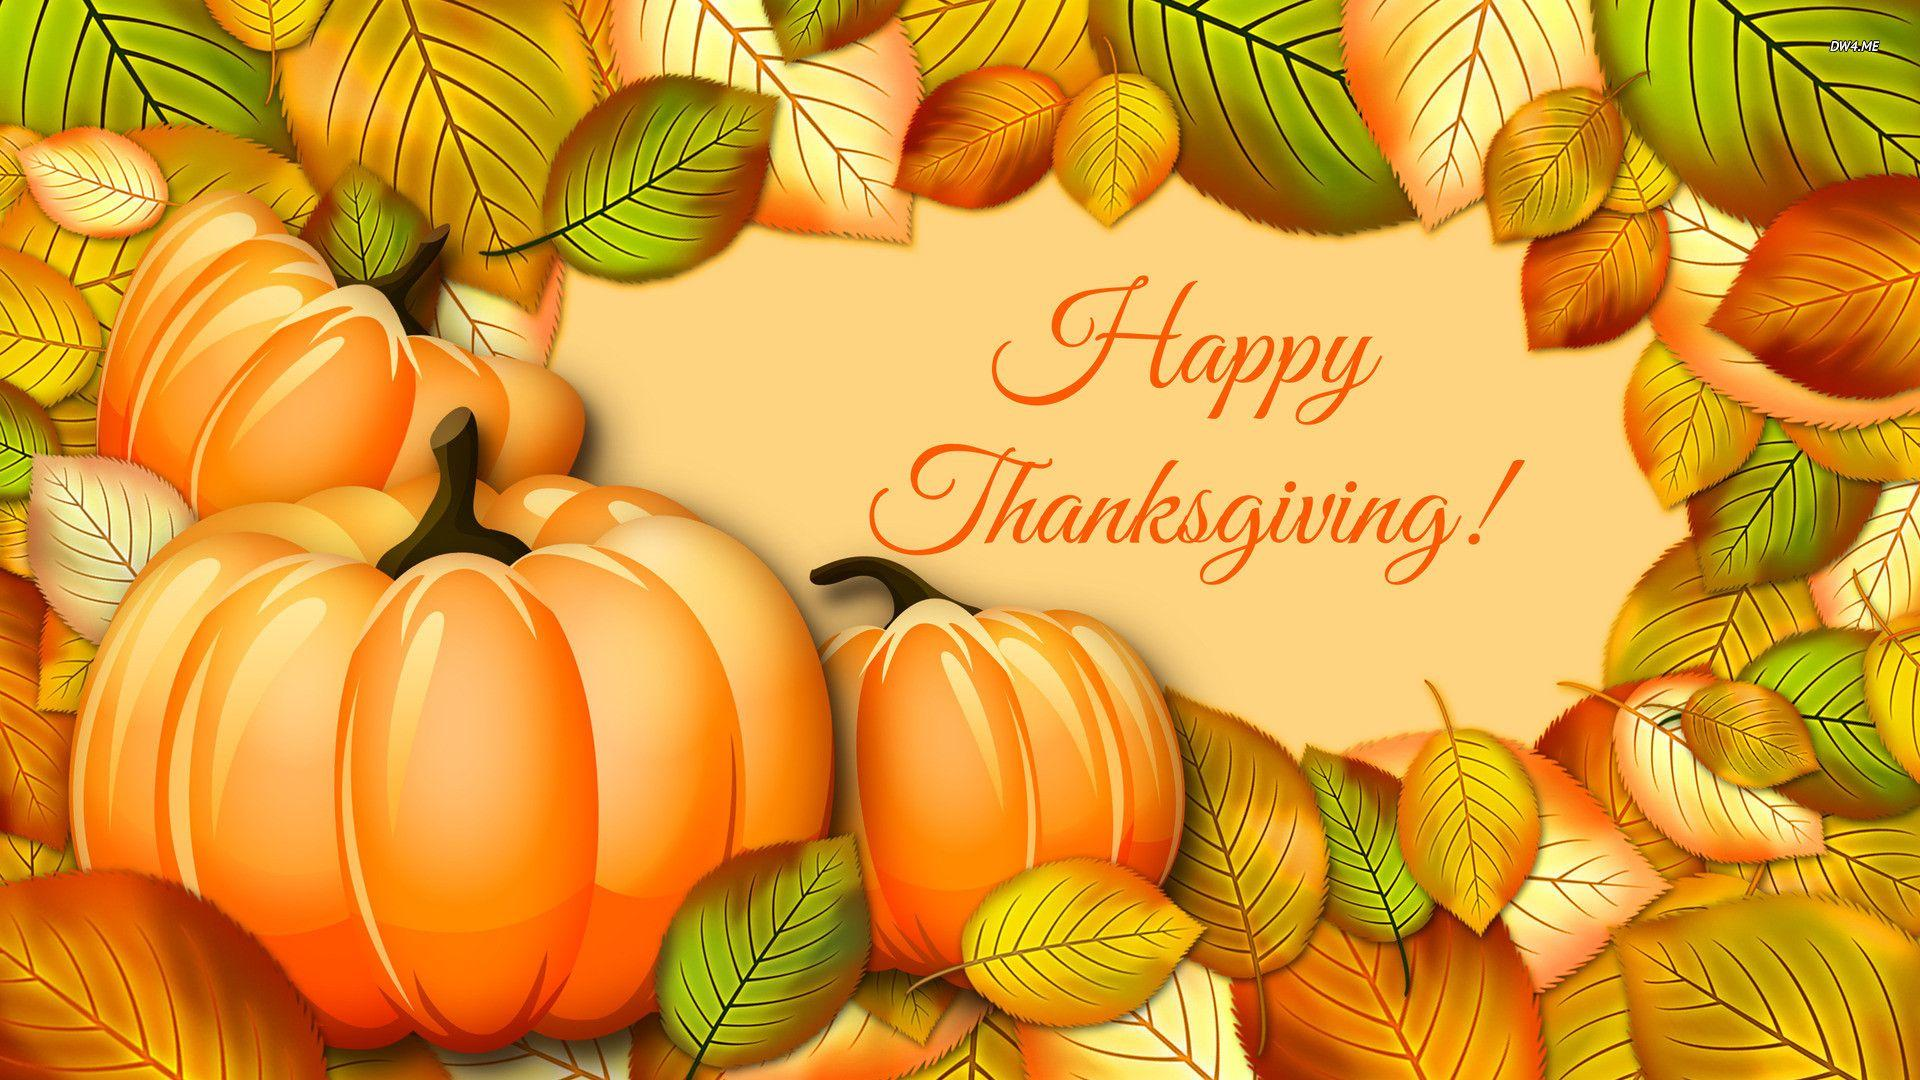 Thanksgiving Wallpaper 1920x1080 (73+ images)